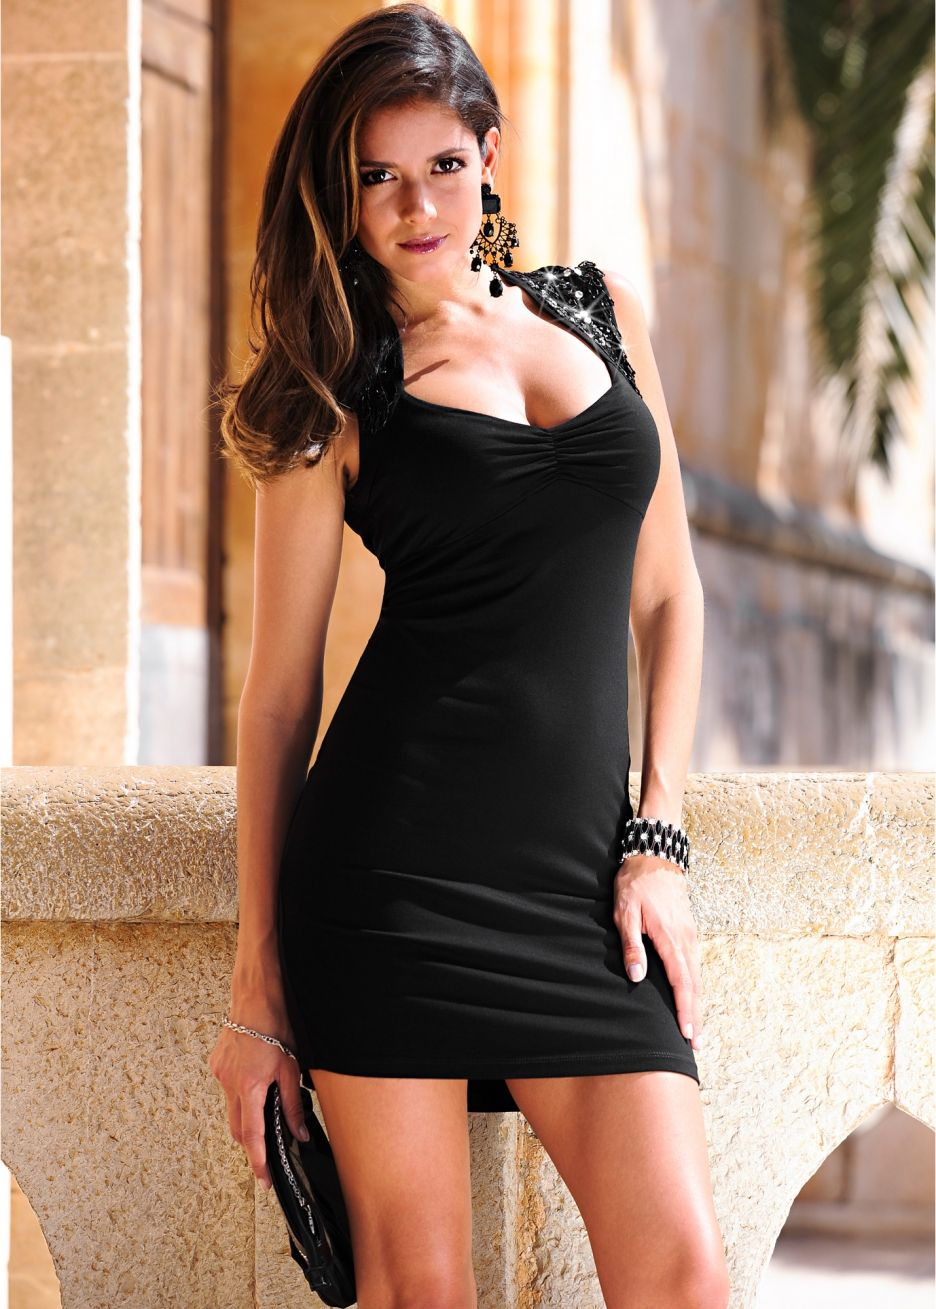 Black dress short tight